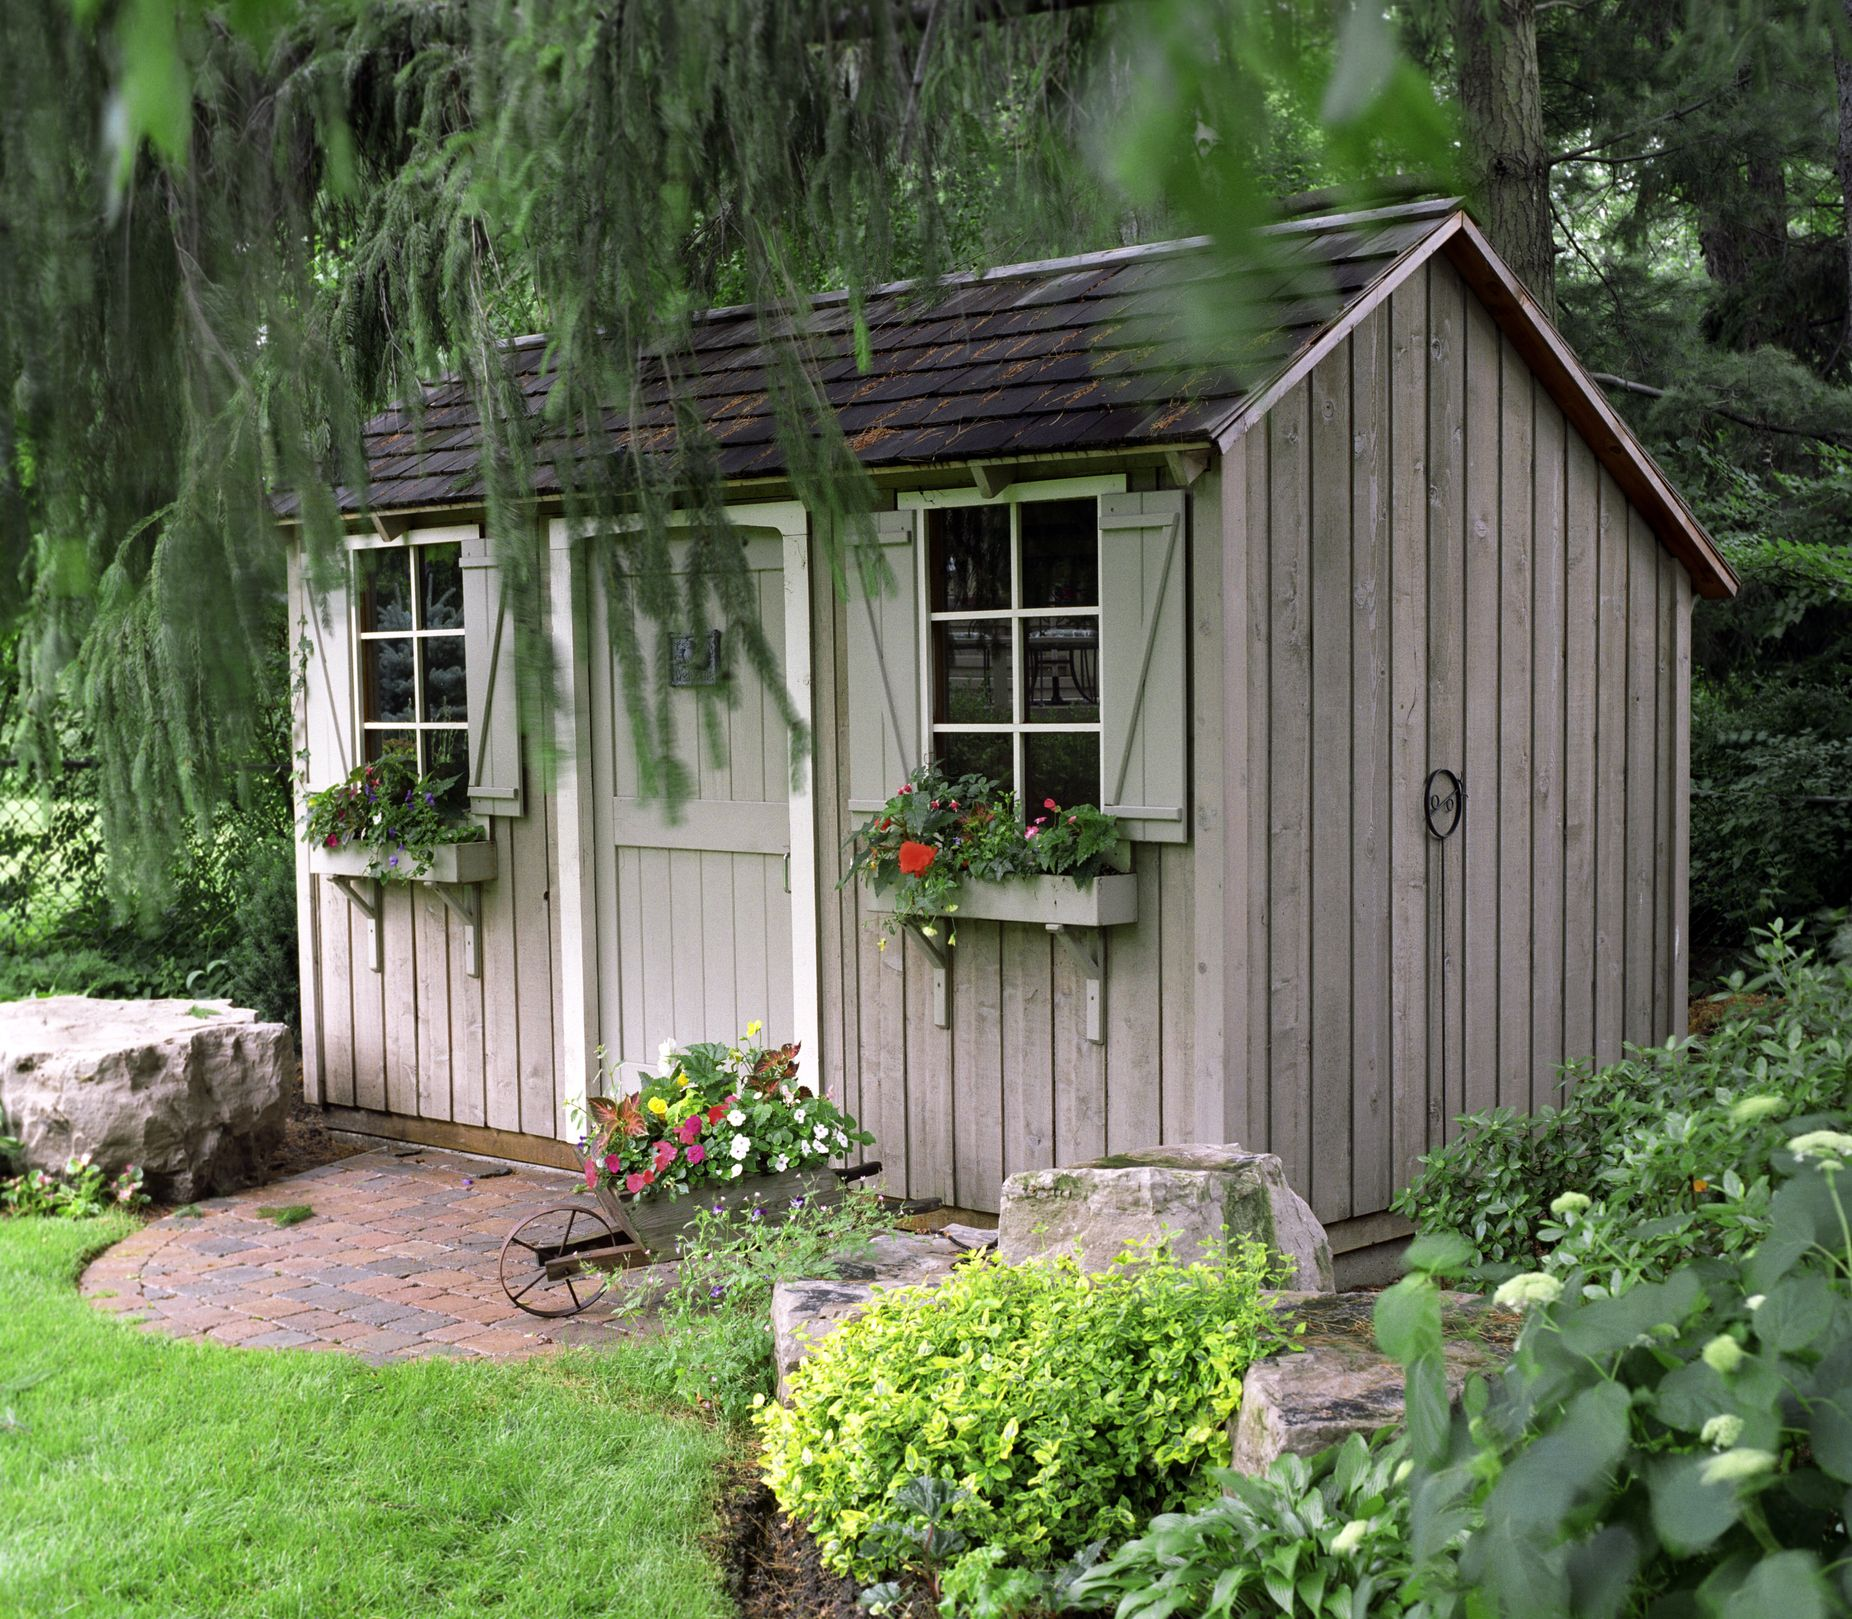 6 steps to transforming your old garden shed